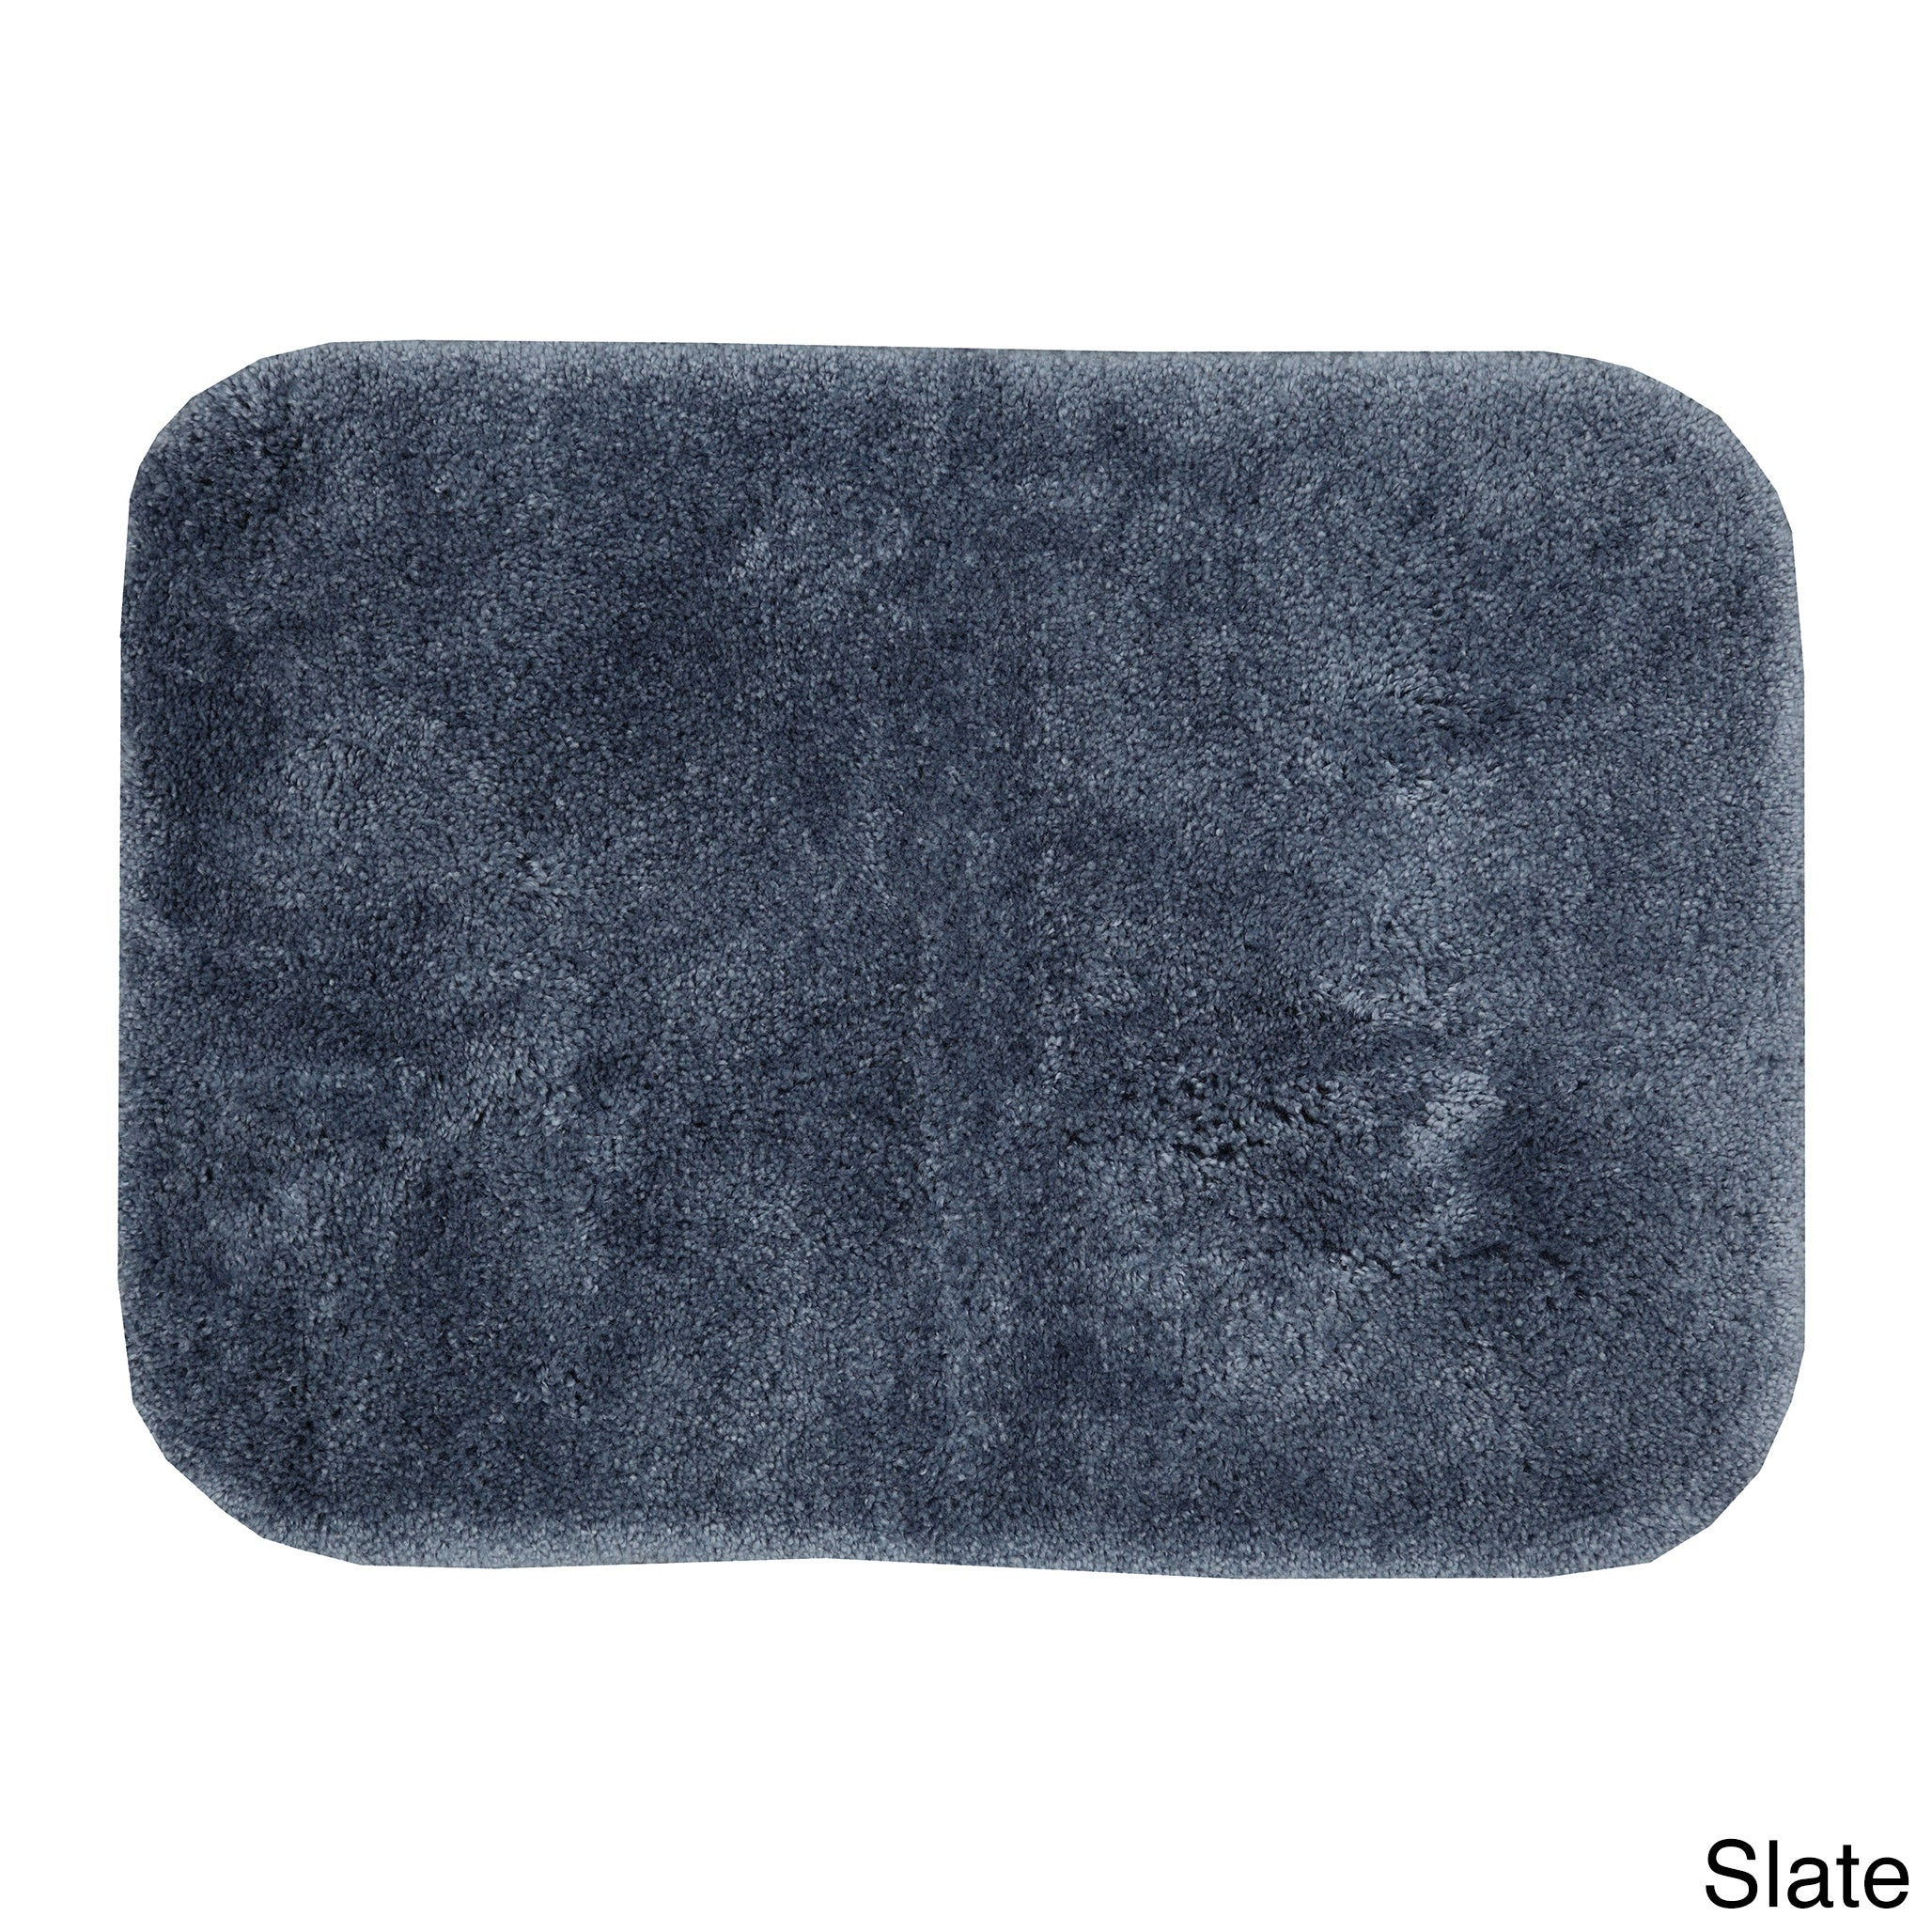 Shop Mohawk Home Spa Bath Rug - 20 x 34 - On Sale - Free Shipping On ...